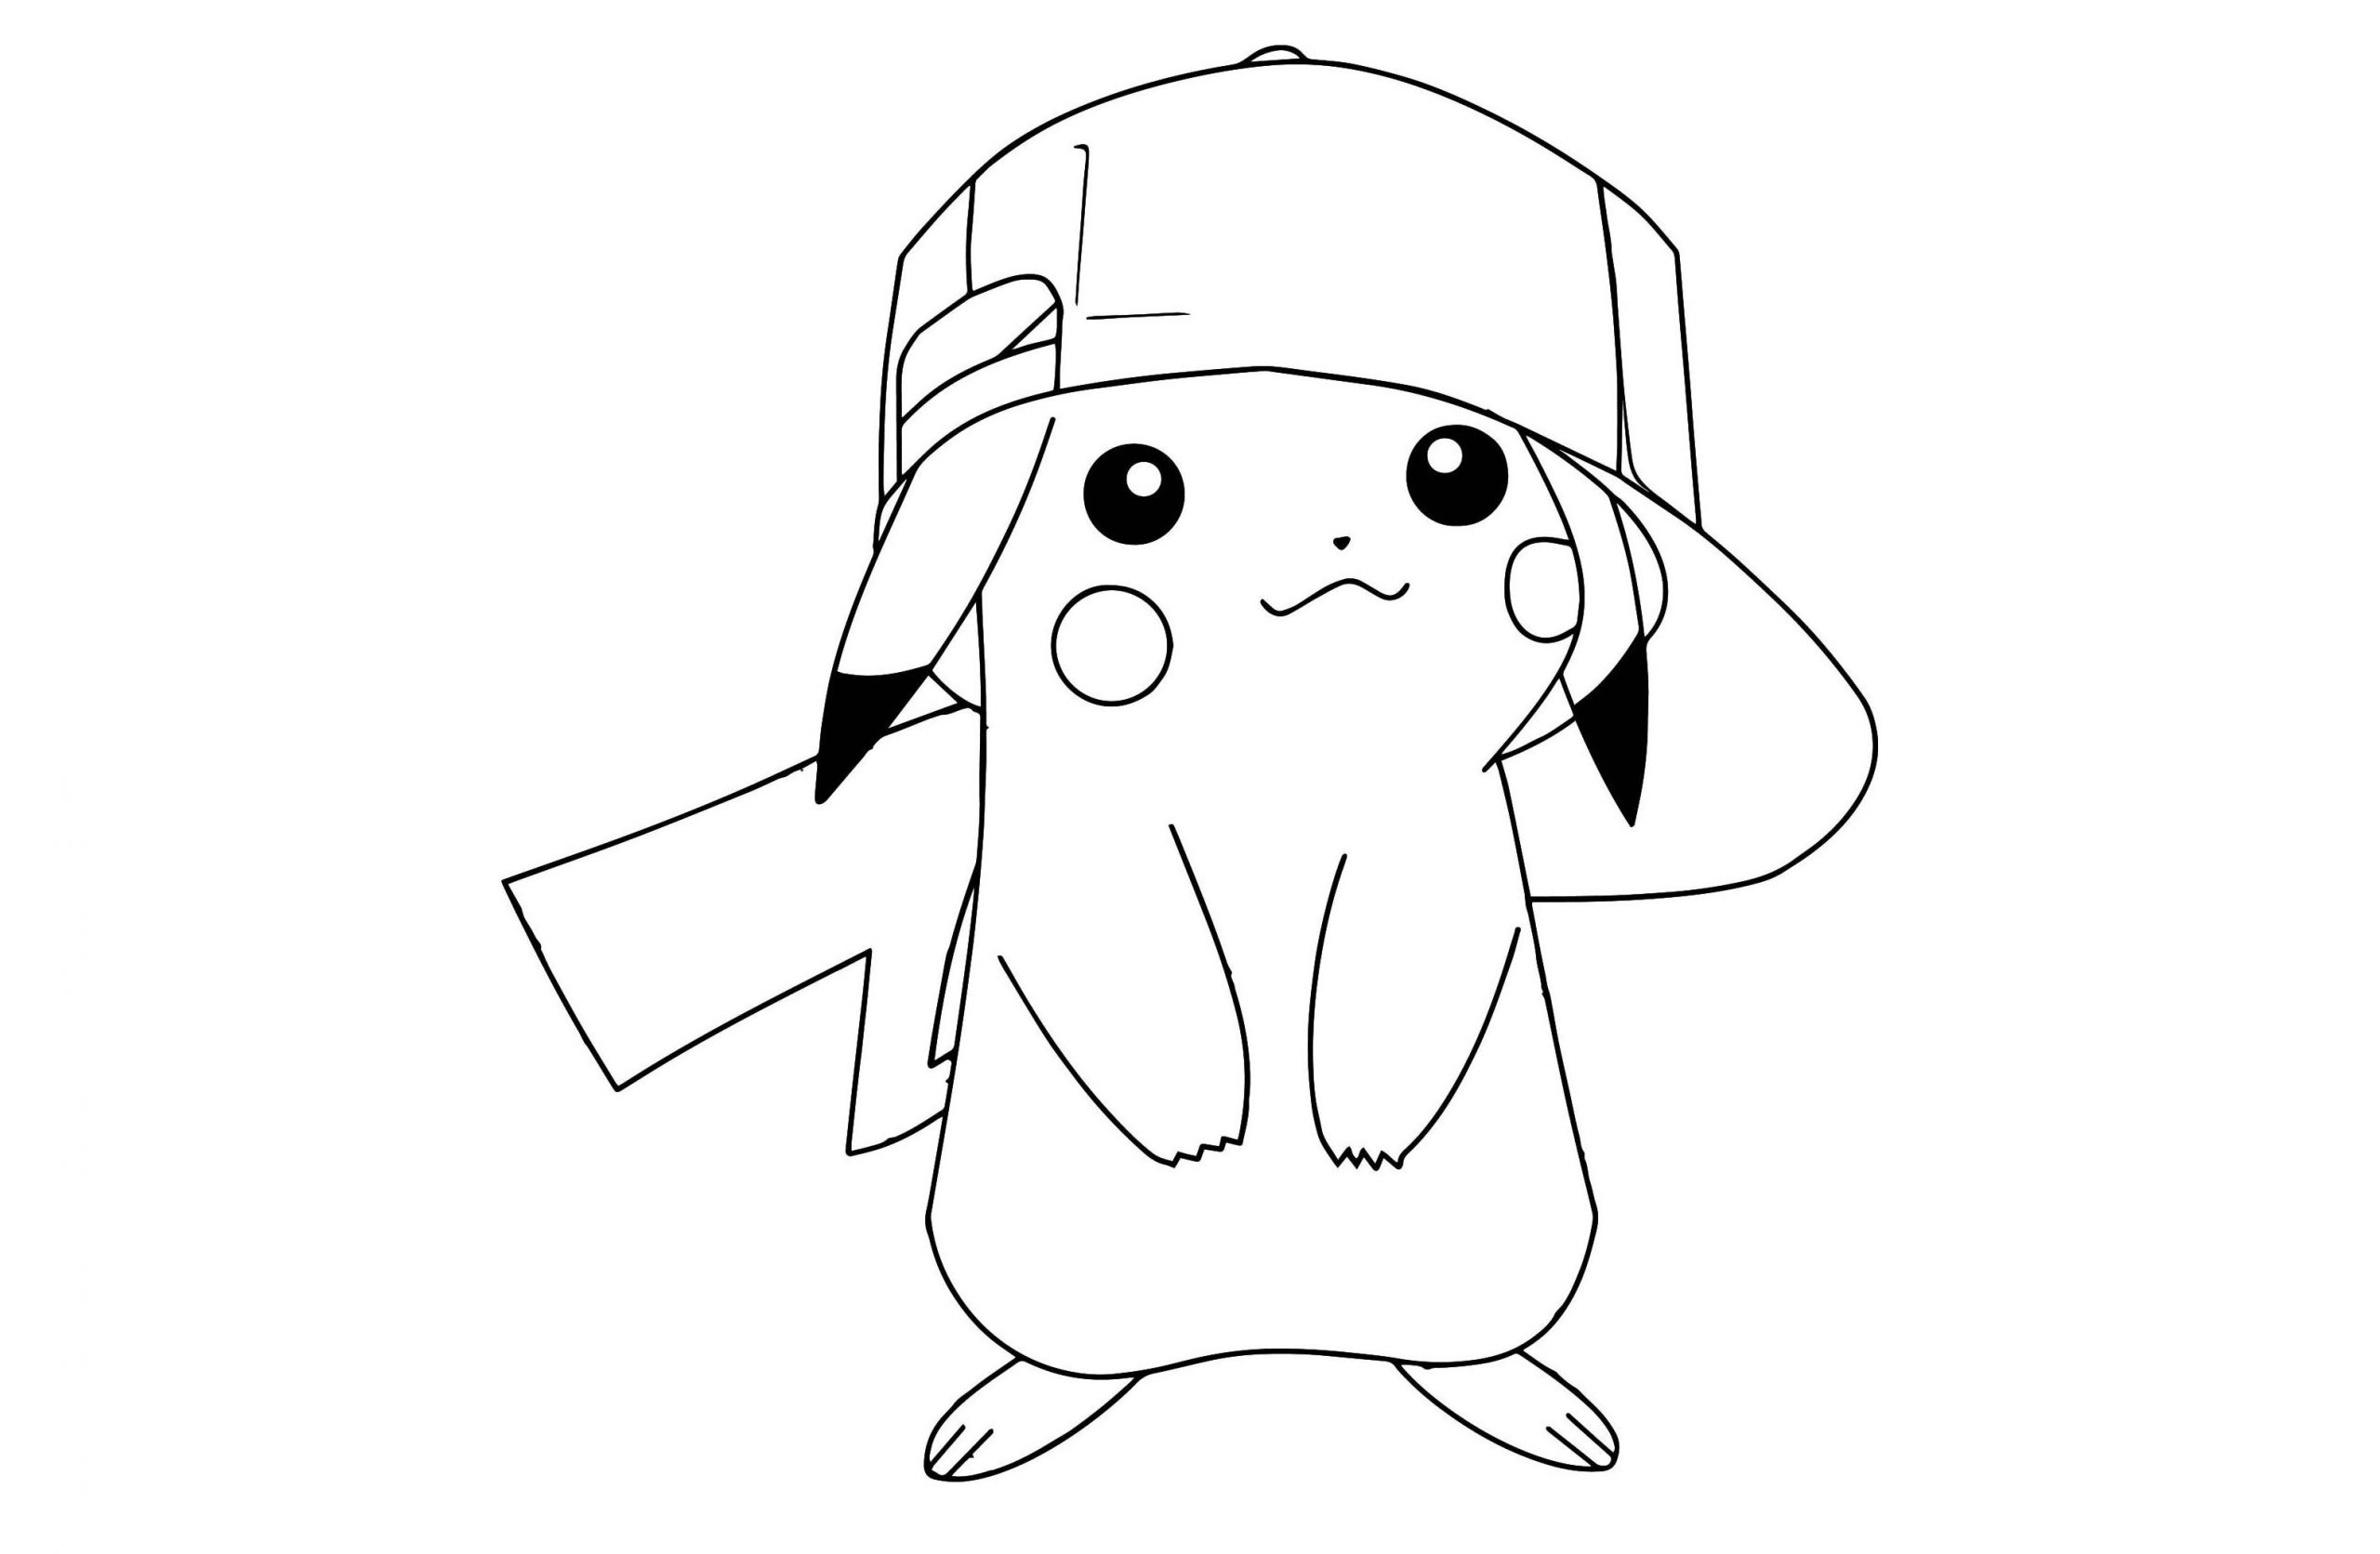 pokemon detective pikachu coloring pages free pokemon coloring pages detective pikachu to printable pages coloring pokemon detective pikachu